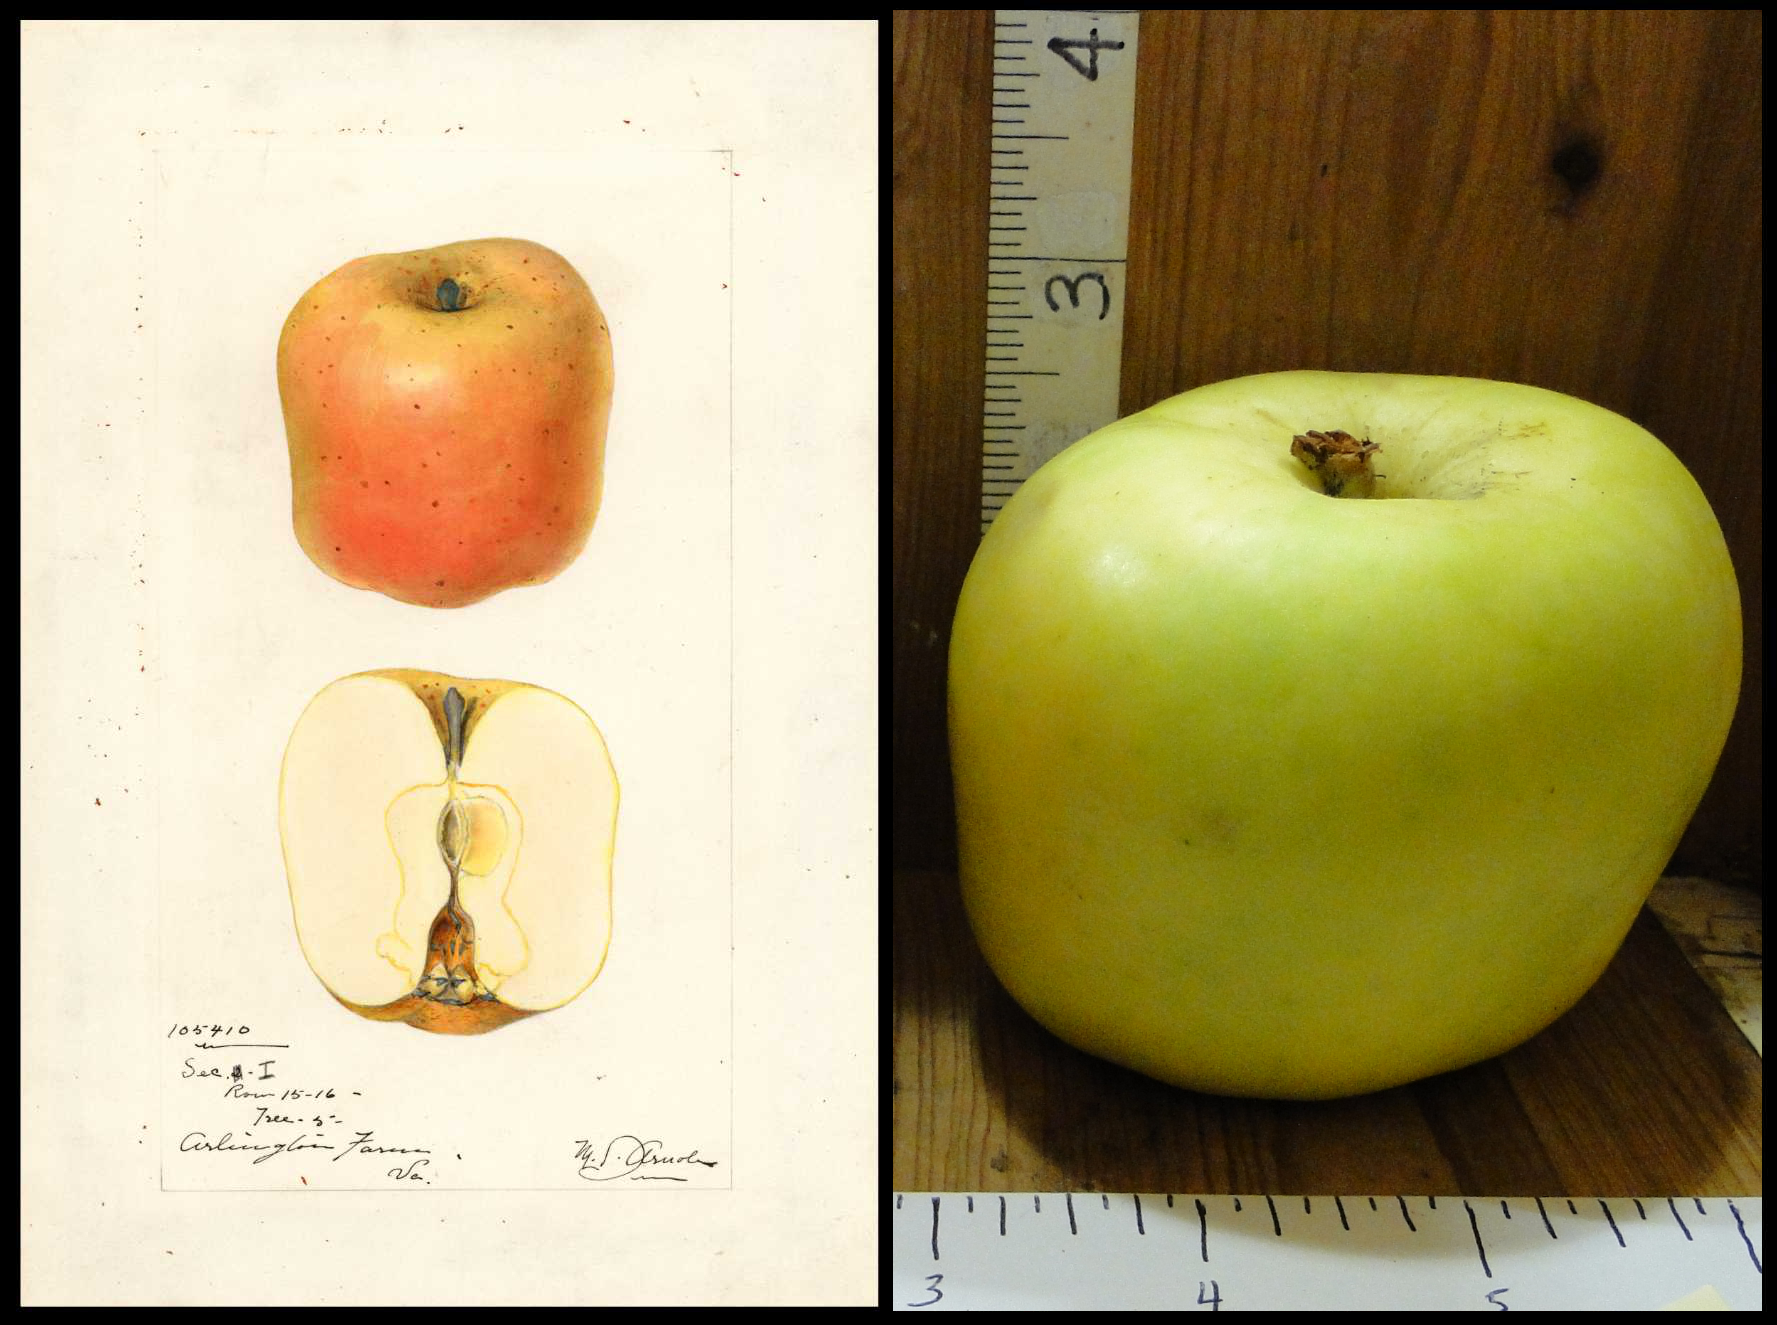 barrel shaped or almost square shaped green apple